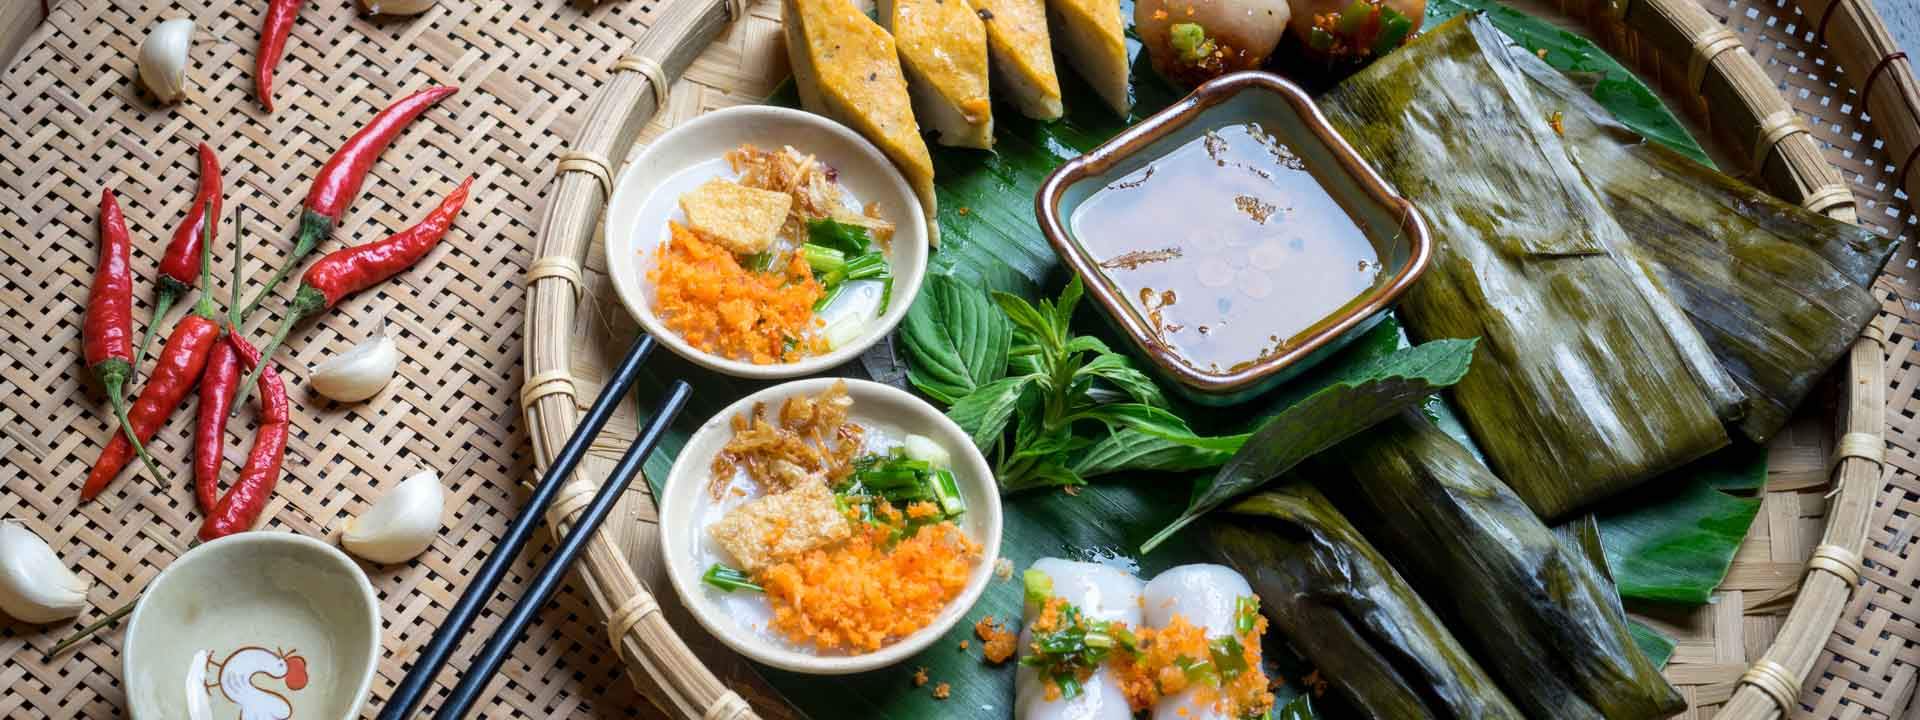 High End Culture & Cooking Class in Hanoi 4 days